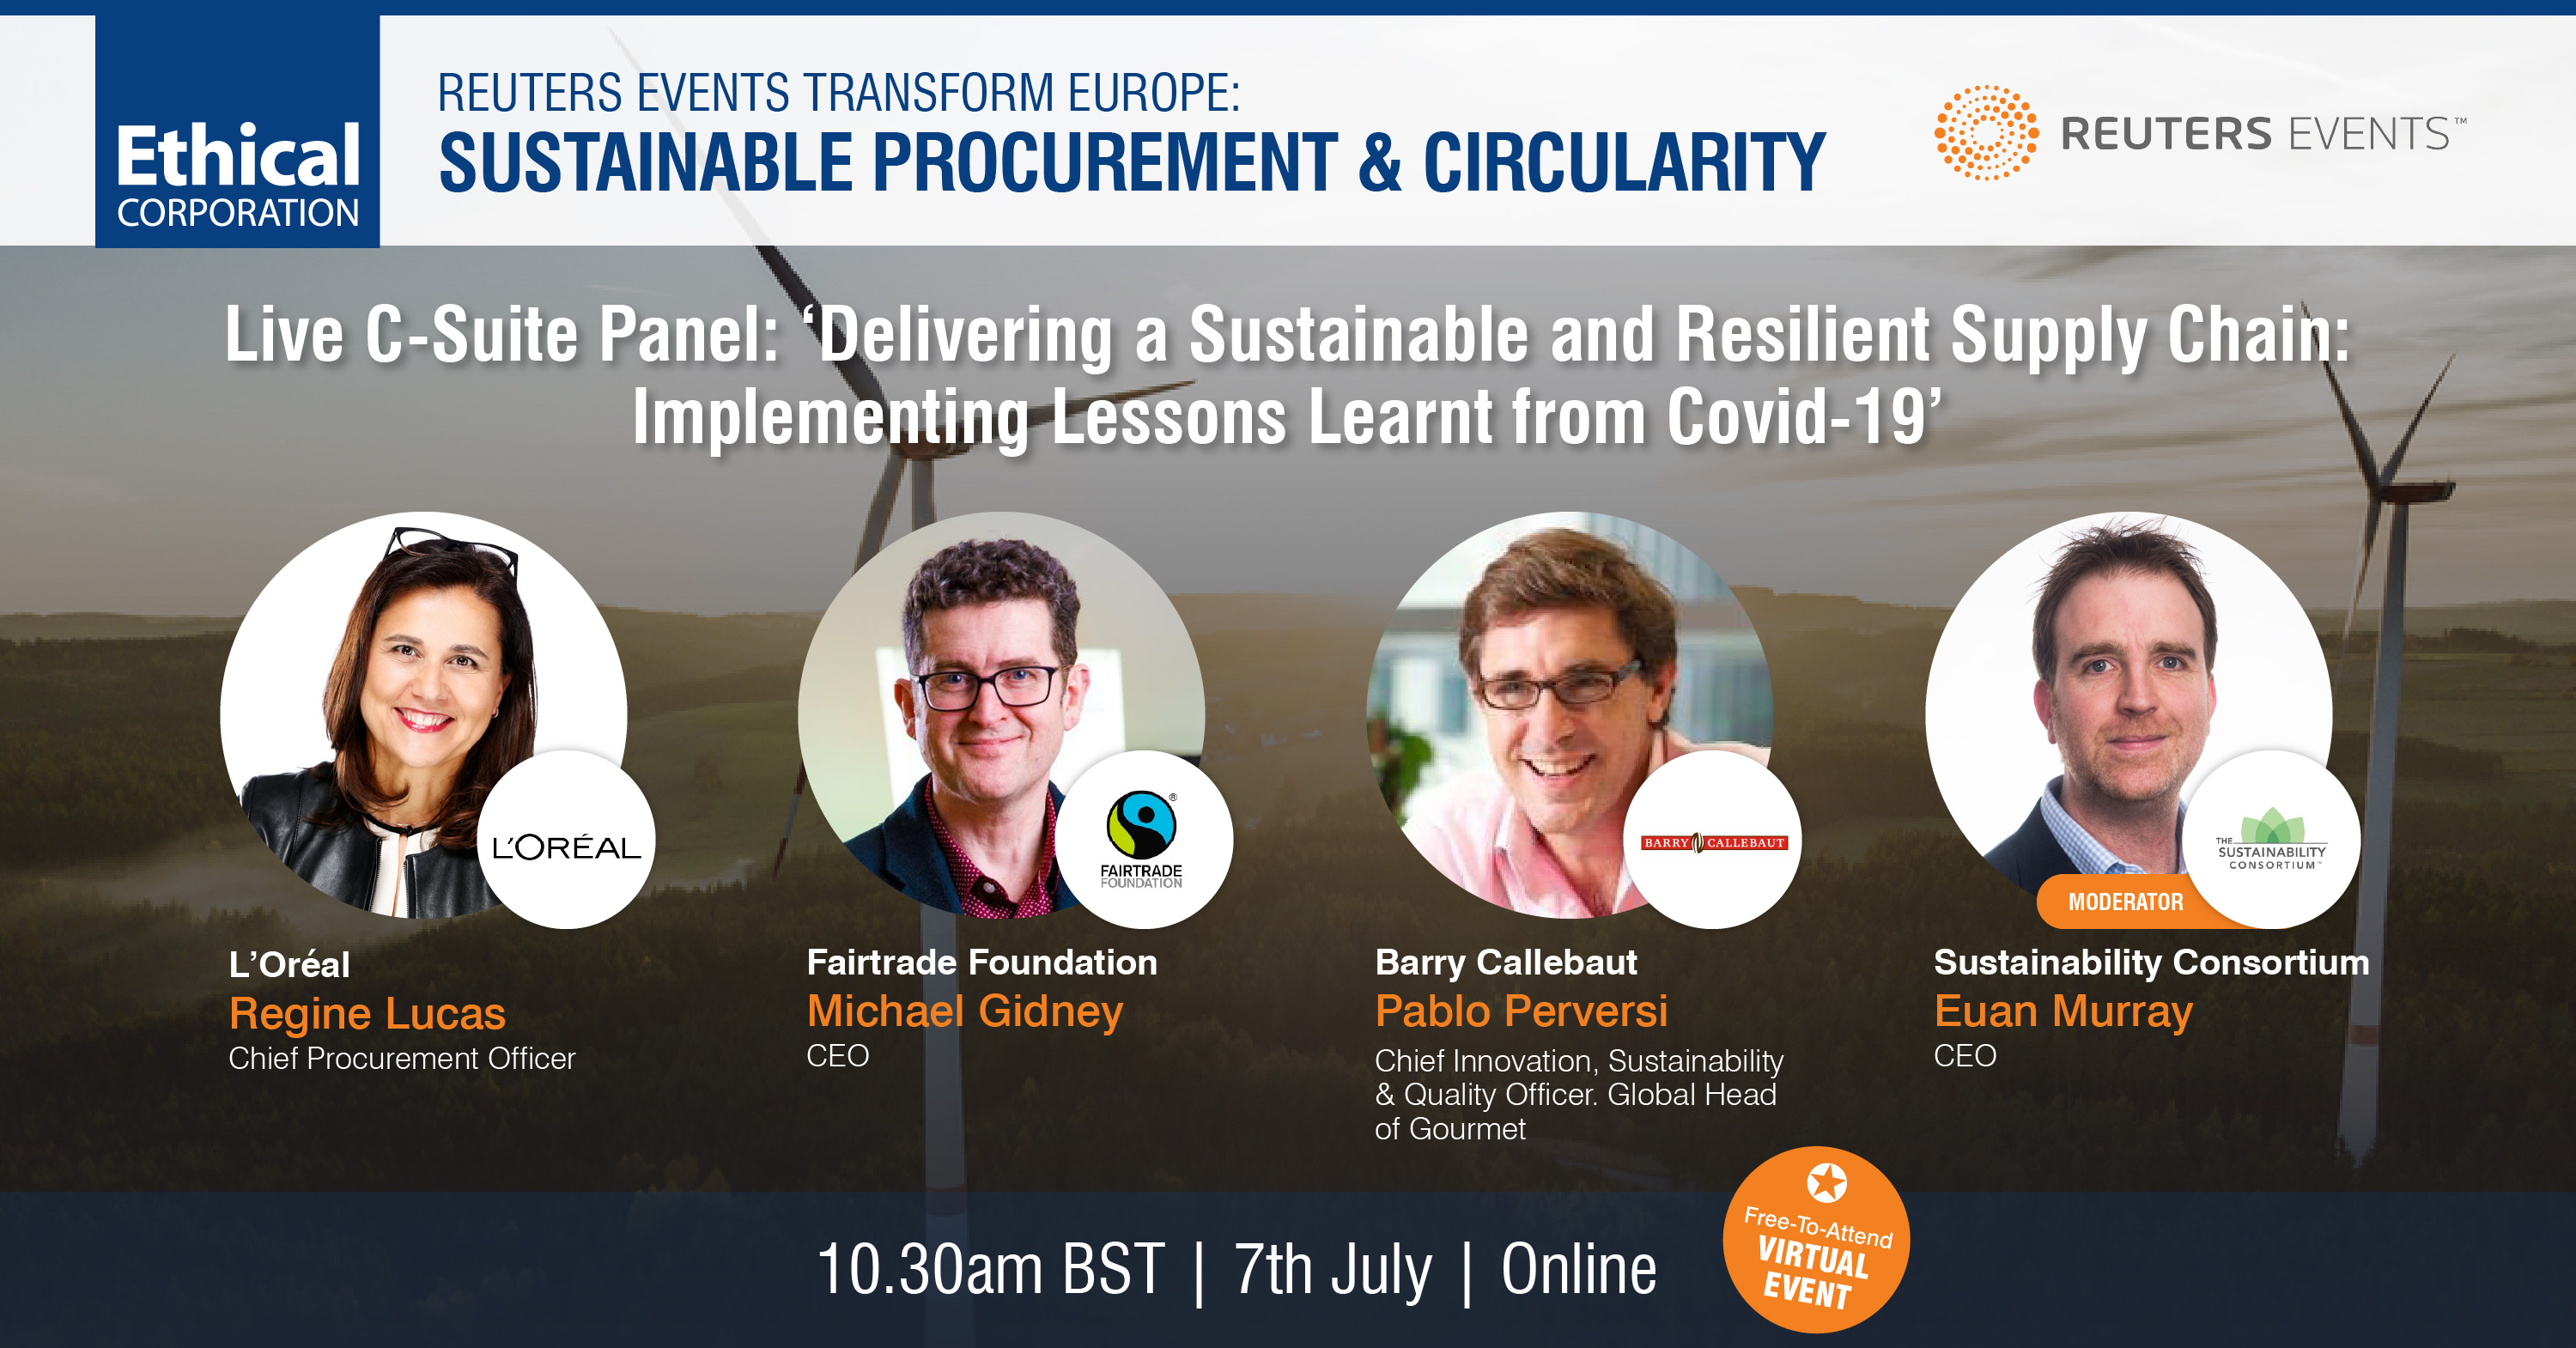 Article about Press Release: Leaders from UNFCCC, PepsiCo, Novo Nordisk, Fairtrade Foundation and B Lab Join us at Transform: Sustainable Procurement & Circularity this July